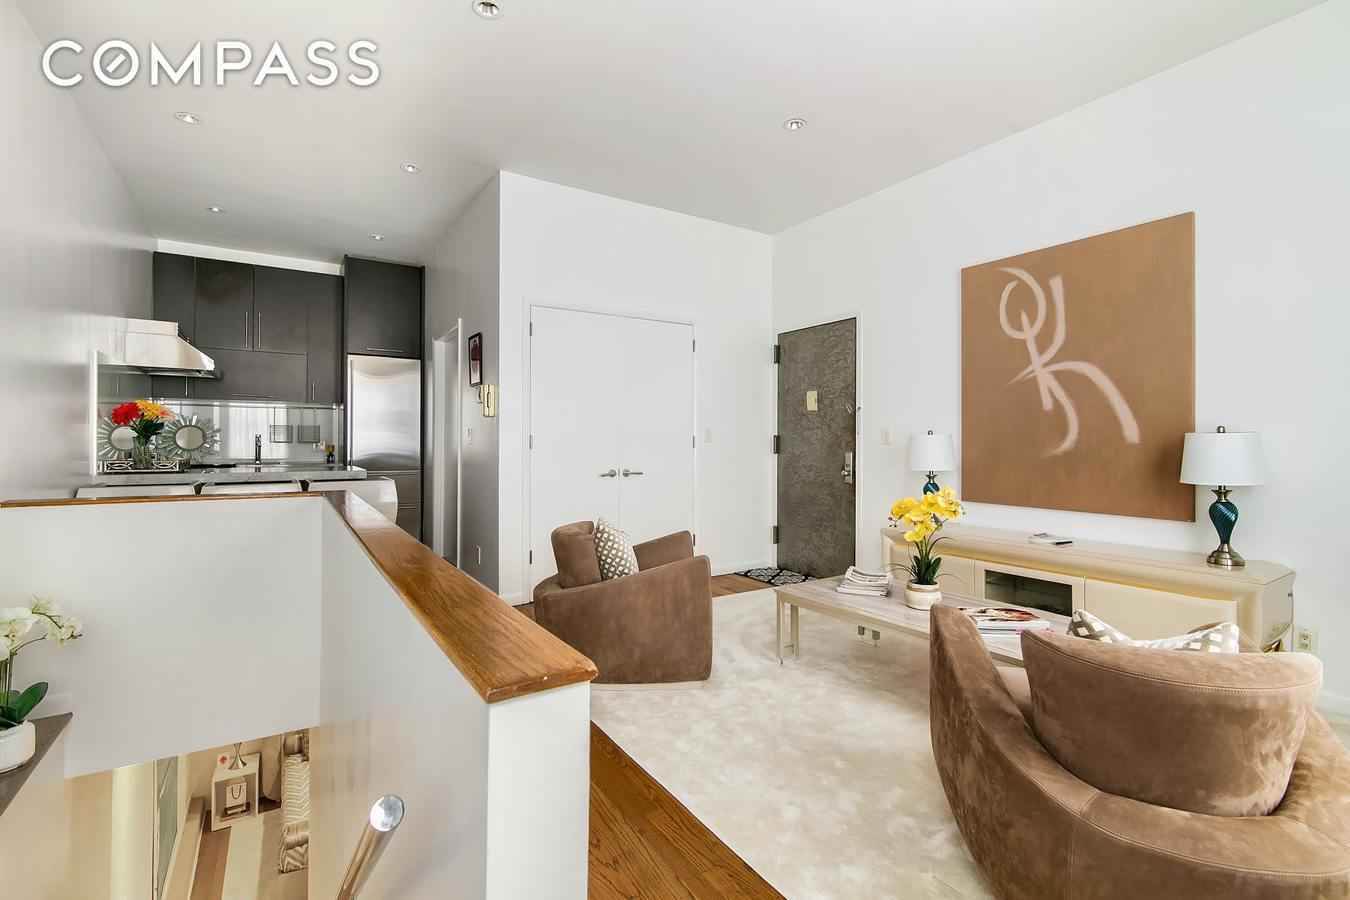 Apartment for sale at 234 West 20th Street, Apt 1-A